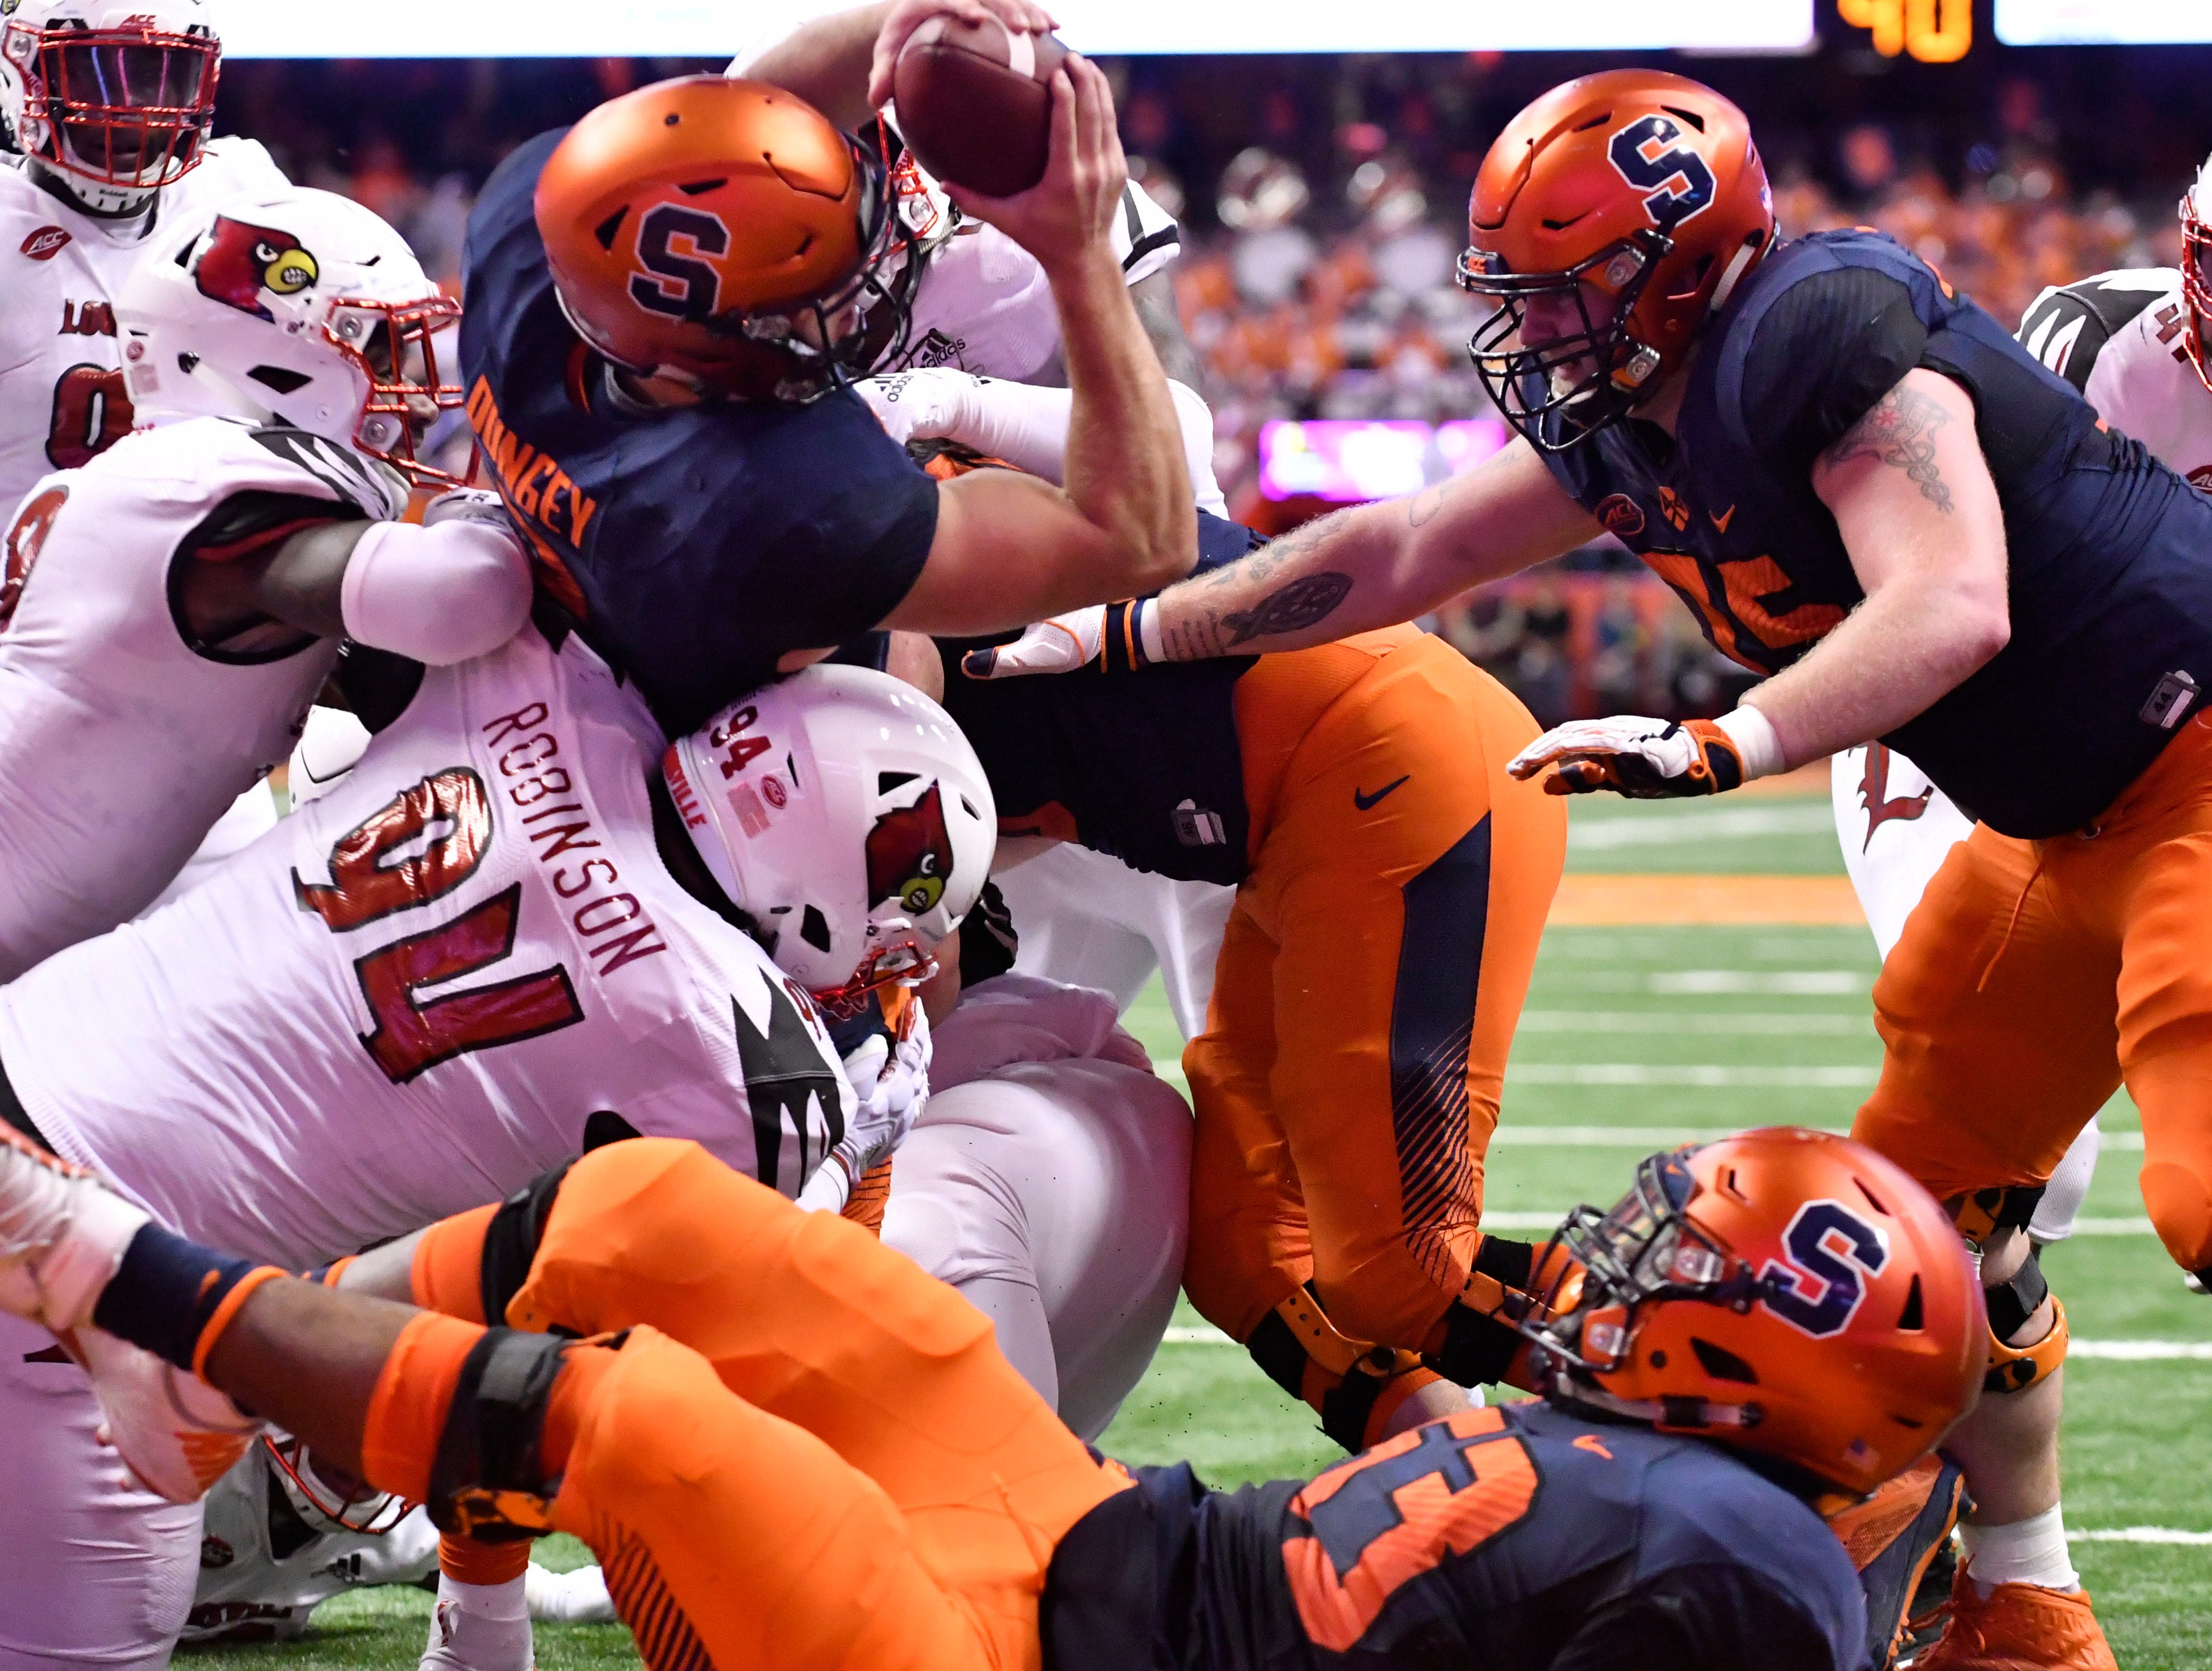 Syracuse Orange quarterback Eric Dungey (2) scores a rushing touchdown over Louisville Cardinals defensive lineman G.G. Robinson (94) during the second quarter at the Carrier Dome.